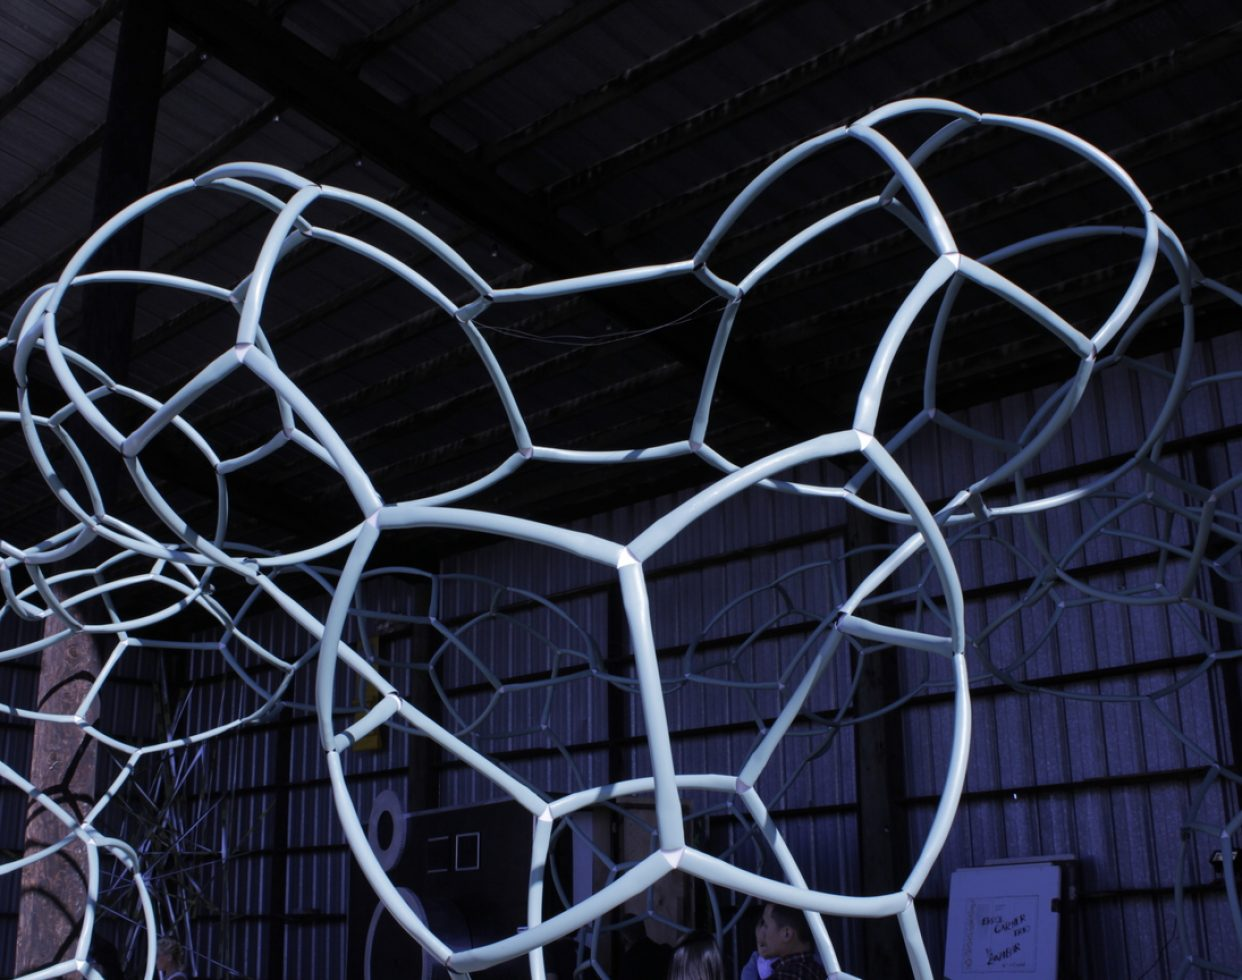 A sculpture made from HDPE pipes by Growetry